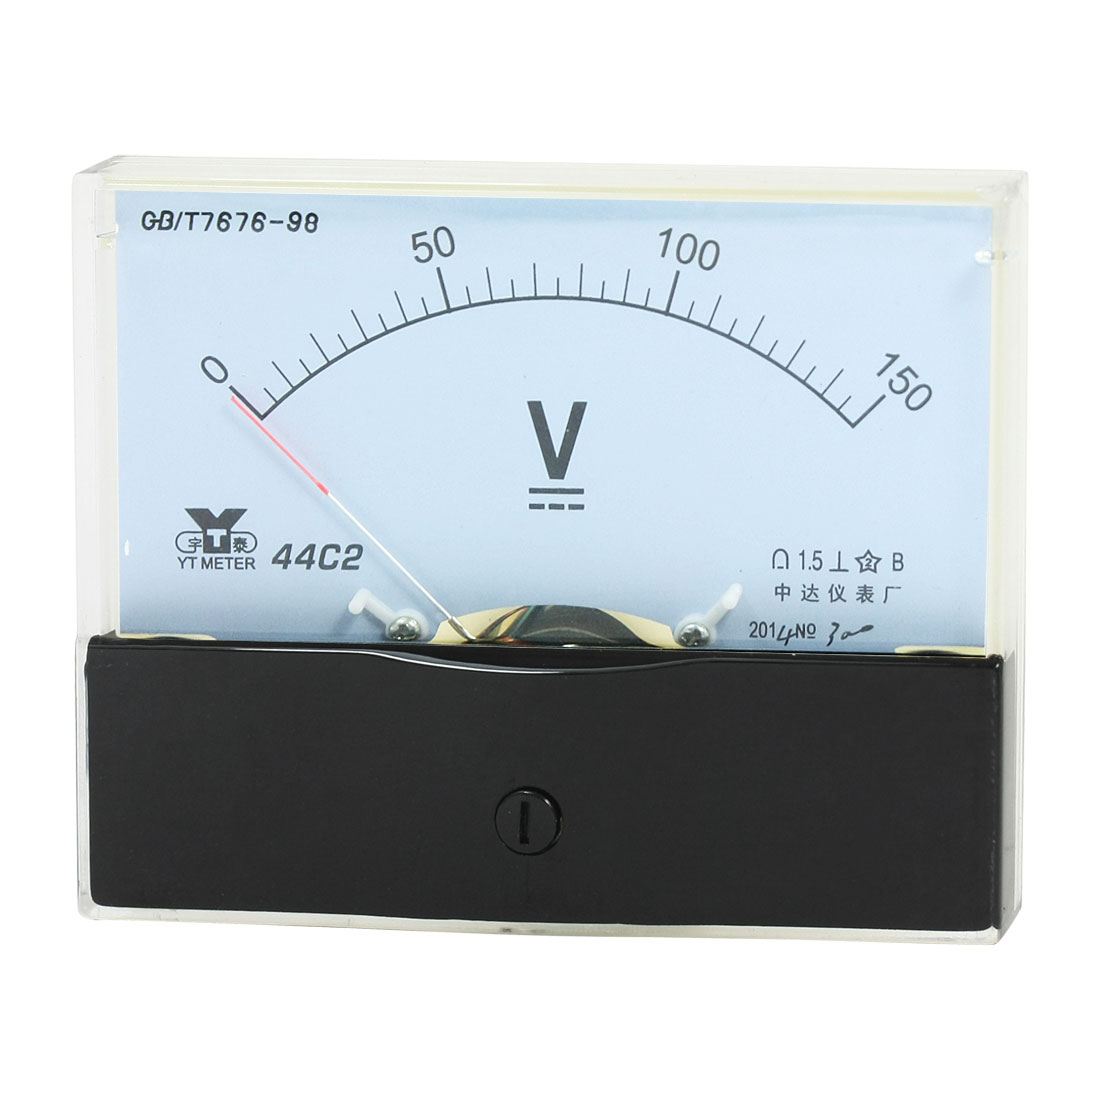 Rectangle Measurement Tool Analog Panel Voltmeter Volt Meter DC 0 - 150V Measuring Range 44C2